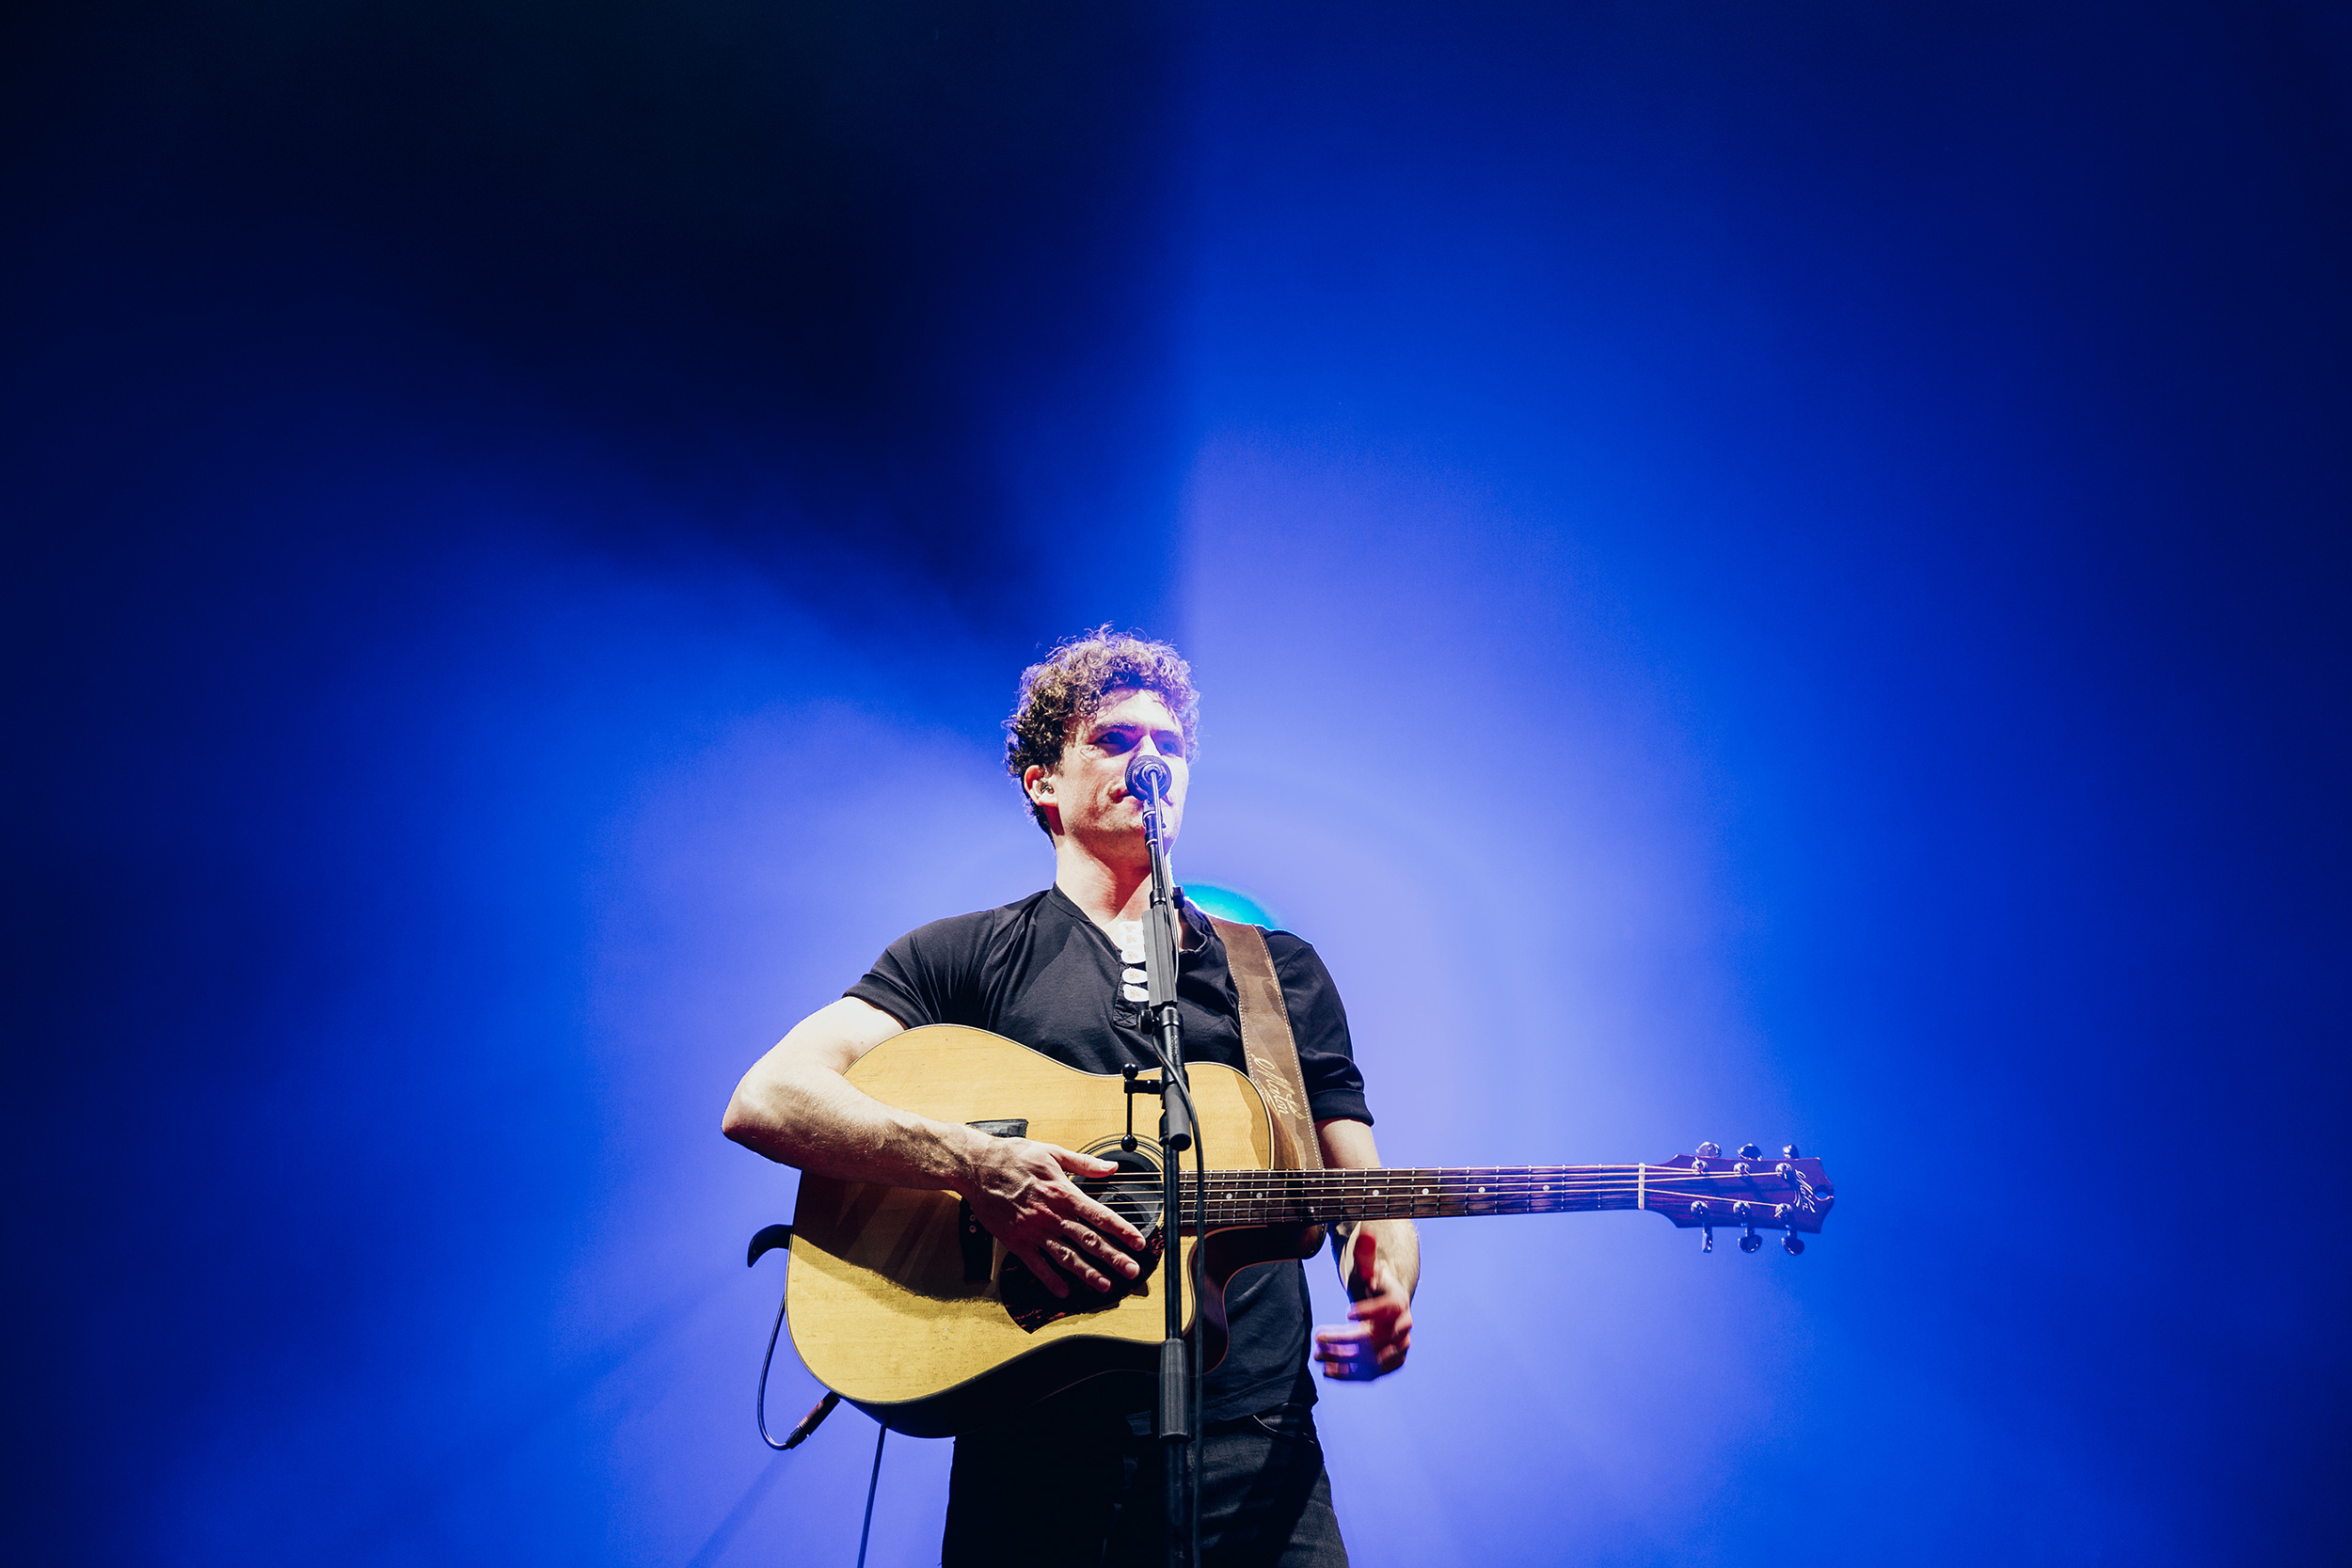 Vance_Joy_131118_Communion-(52-of-64).jpg